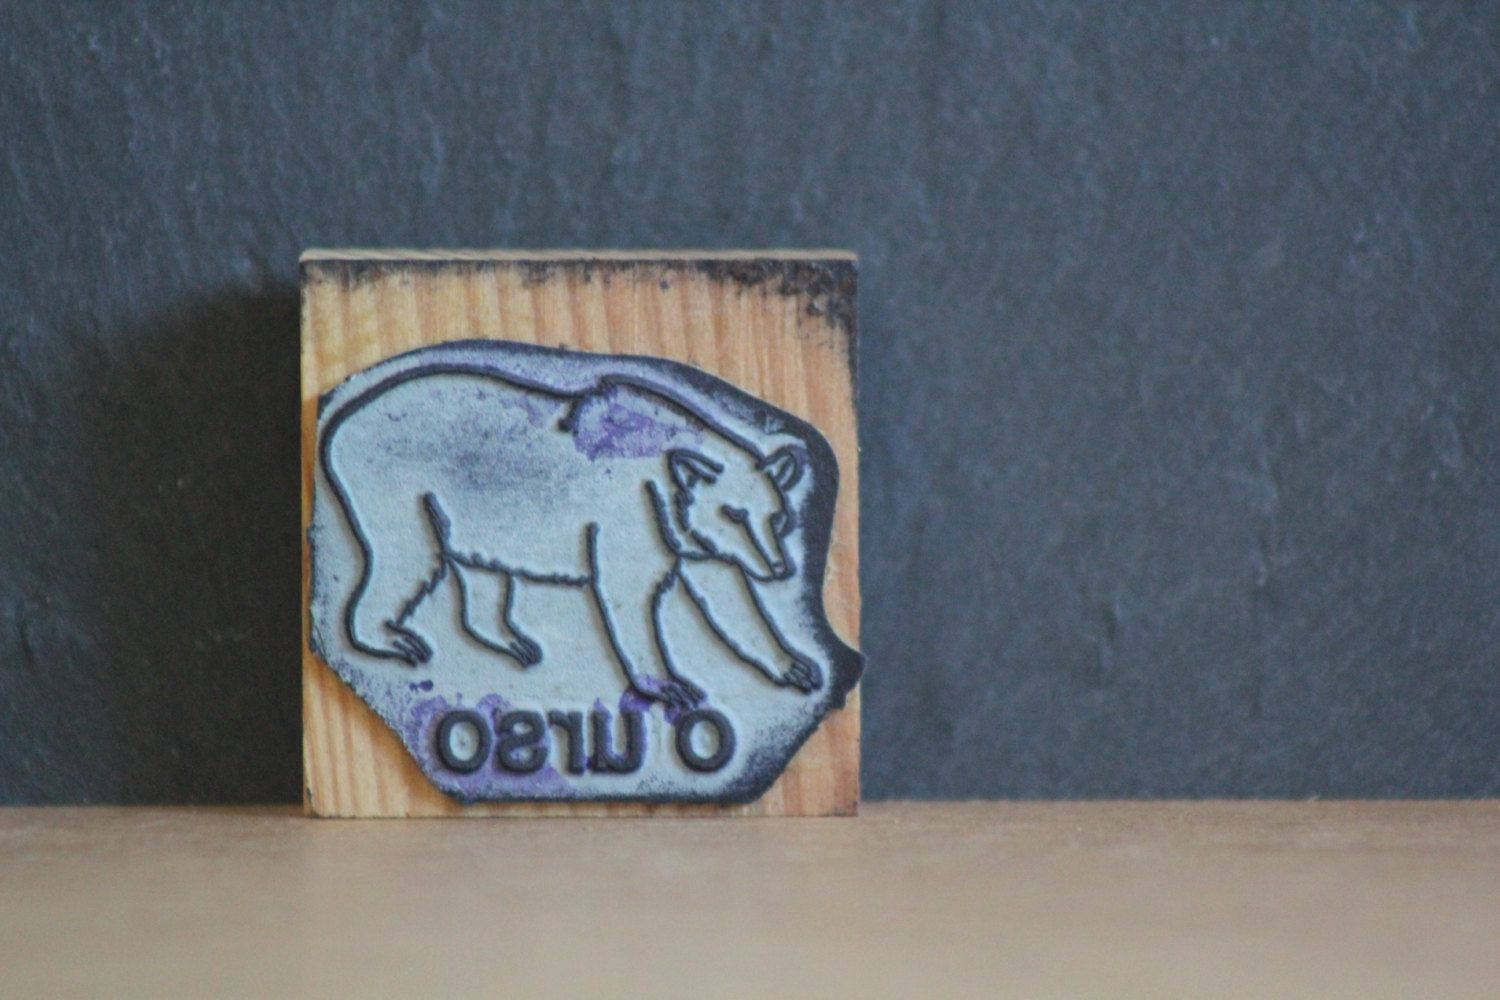 Rubber stamp craft supplies - Vintage Bear Rubber Stamp Old School Stamp Wood Stamp Craft Supplies Tools Portuguese Urso Stamp By